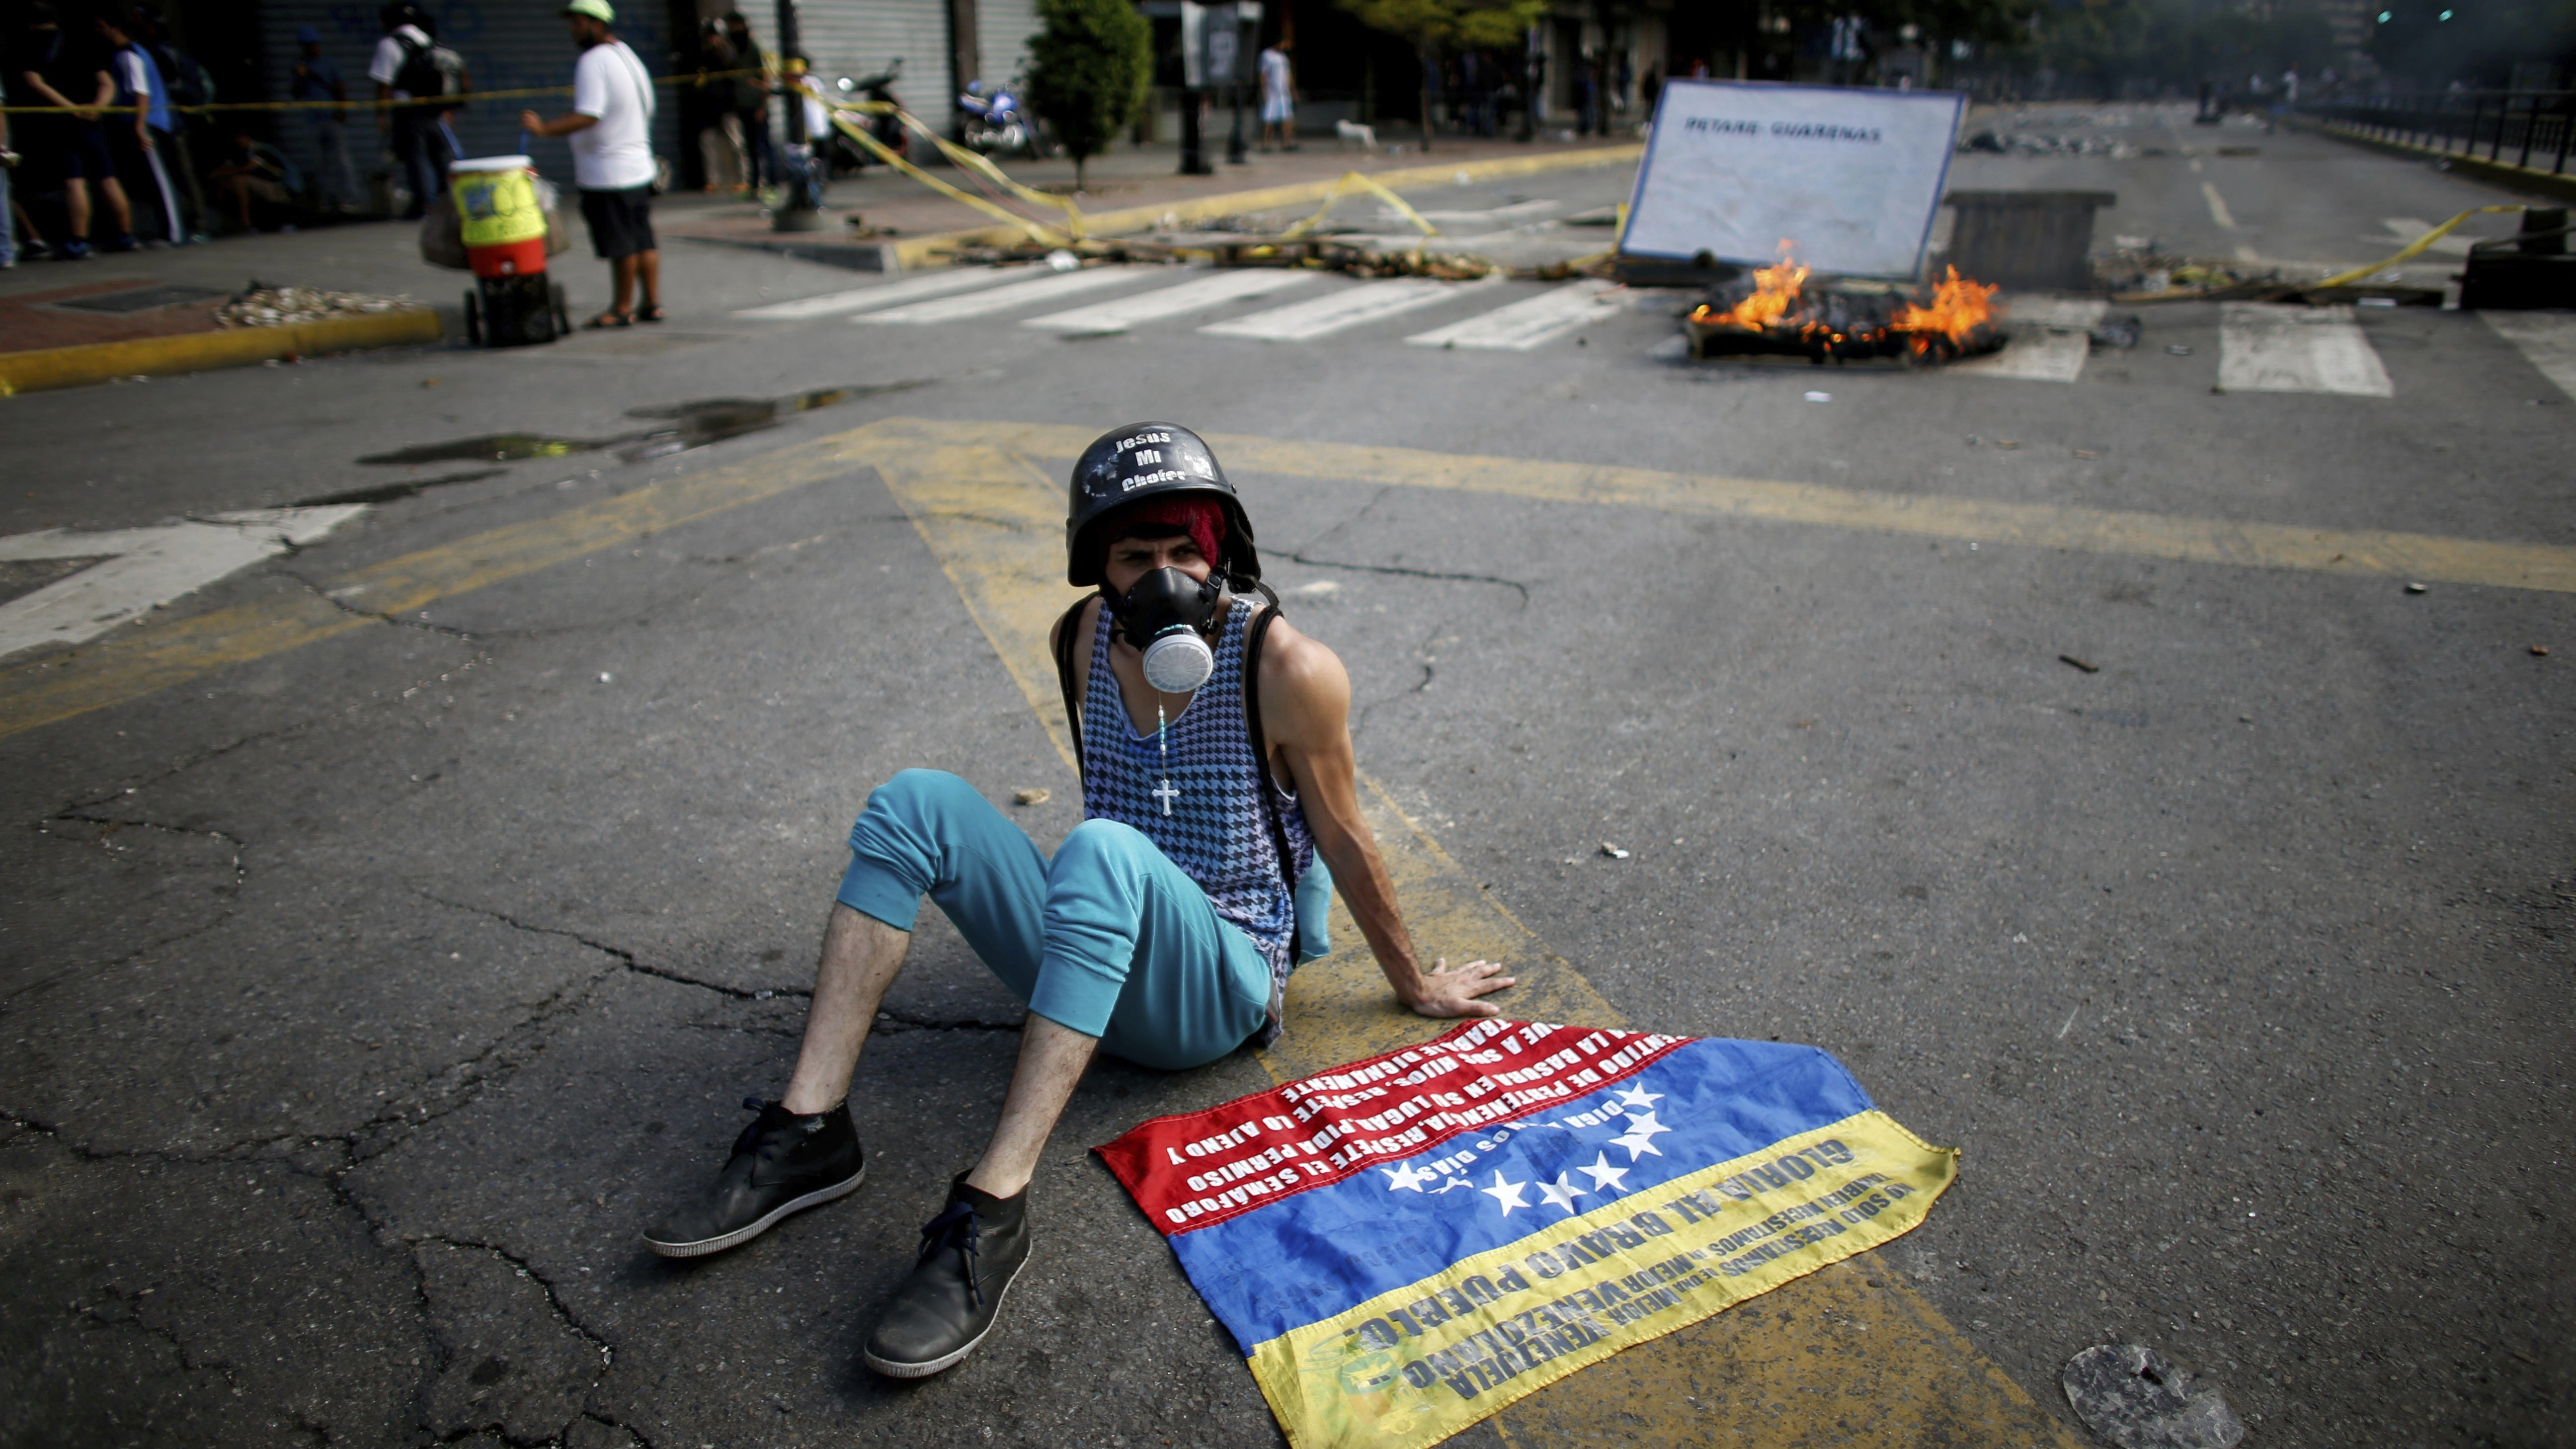 An anti-government demonstrator rests on the ground near a barricade in Caracas, Venezuela